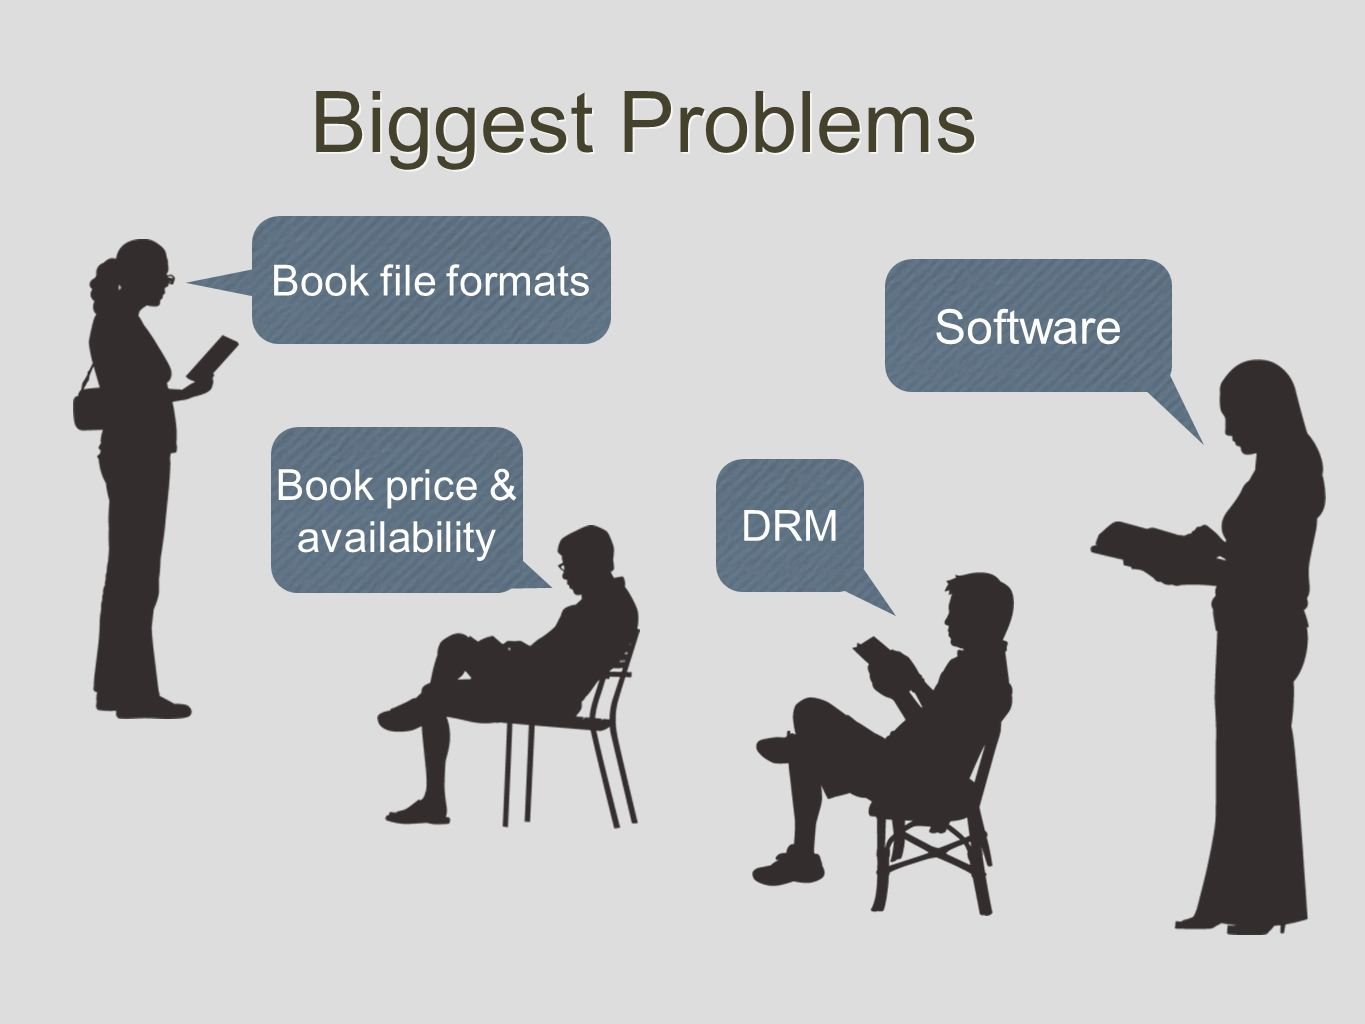 Biggest Problems Software DRM Book file formats Book price & availability